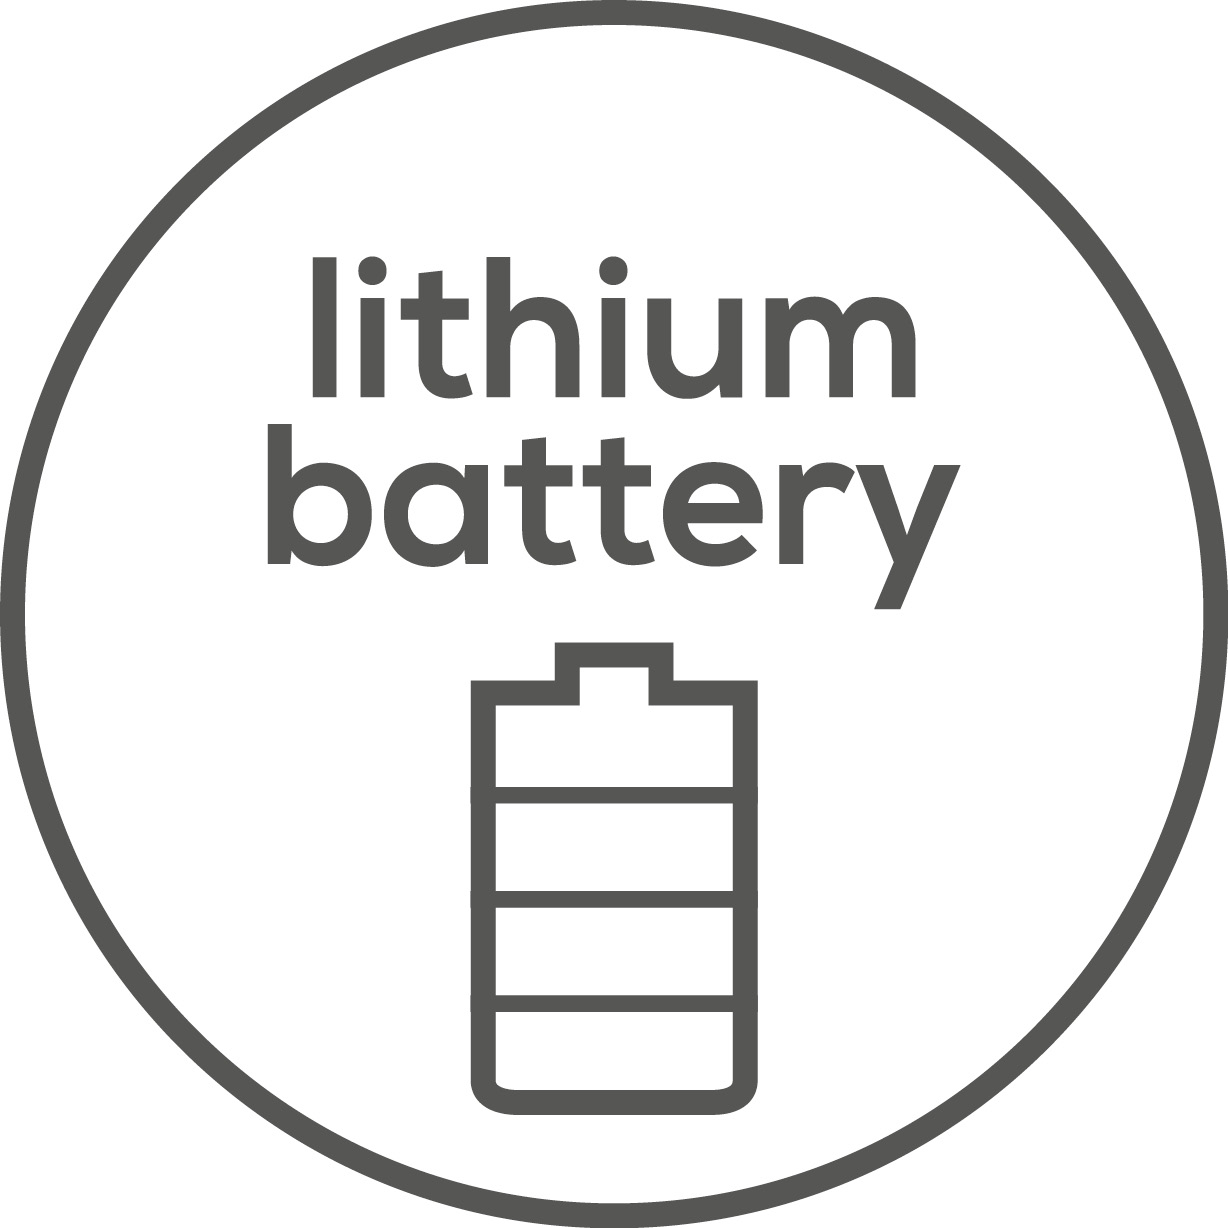 Powerful lithium battery The device has a powerful lithium battery